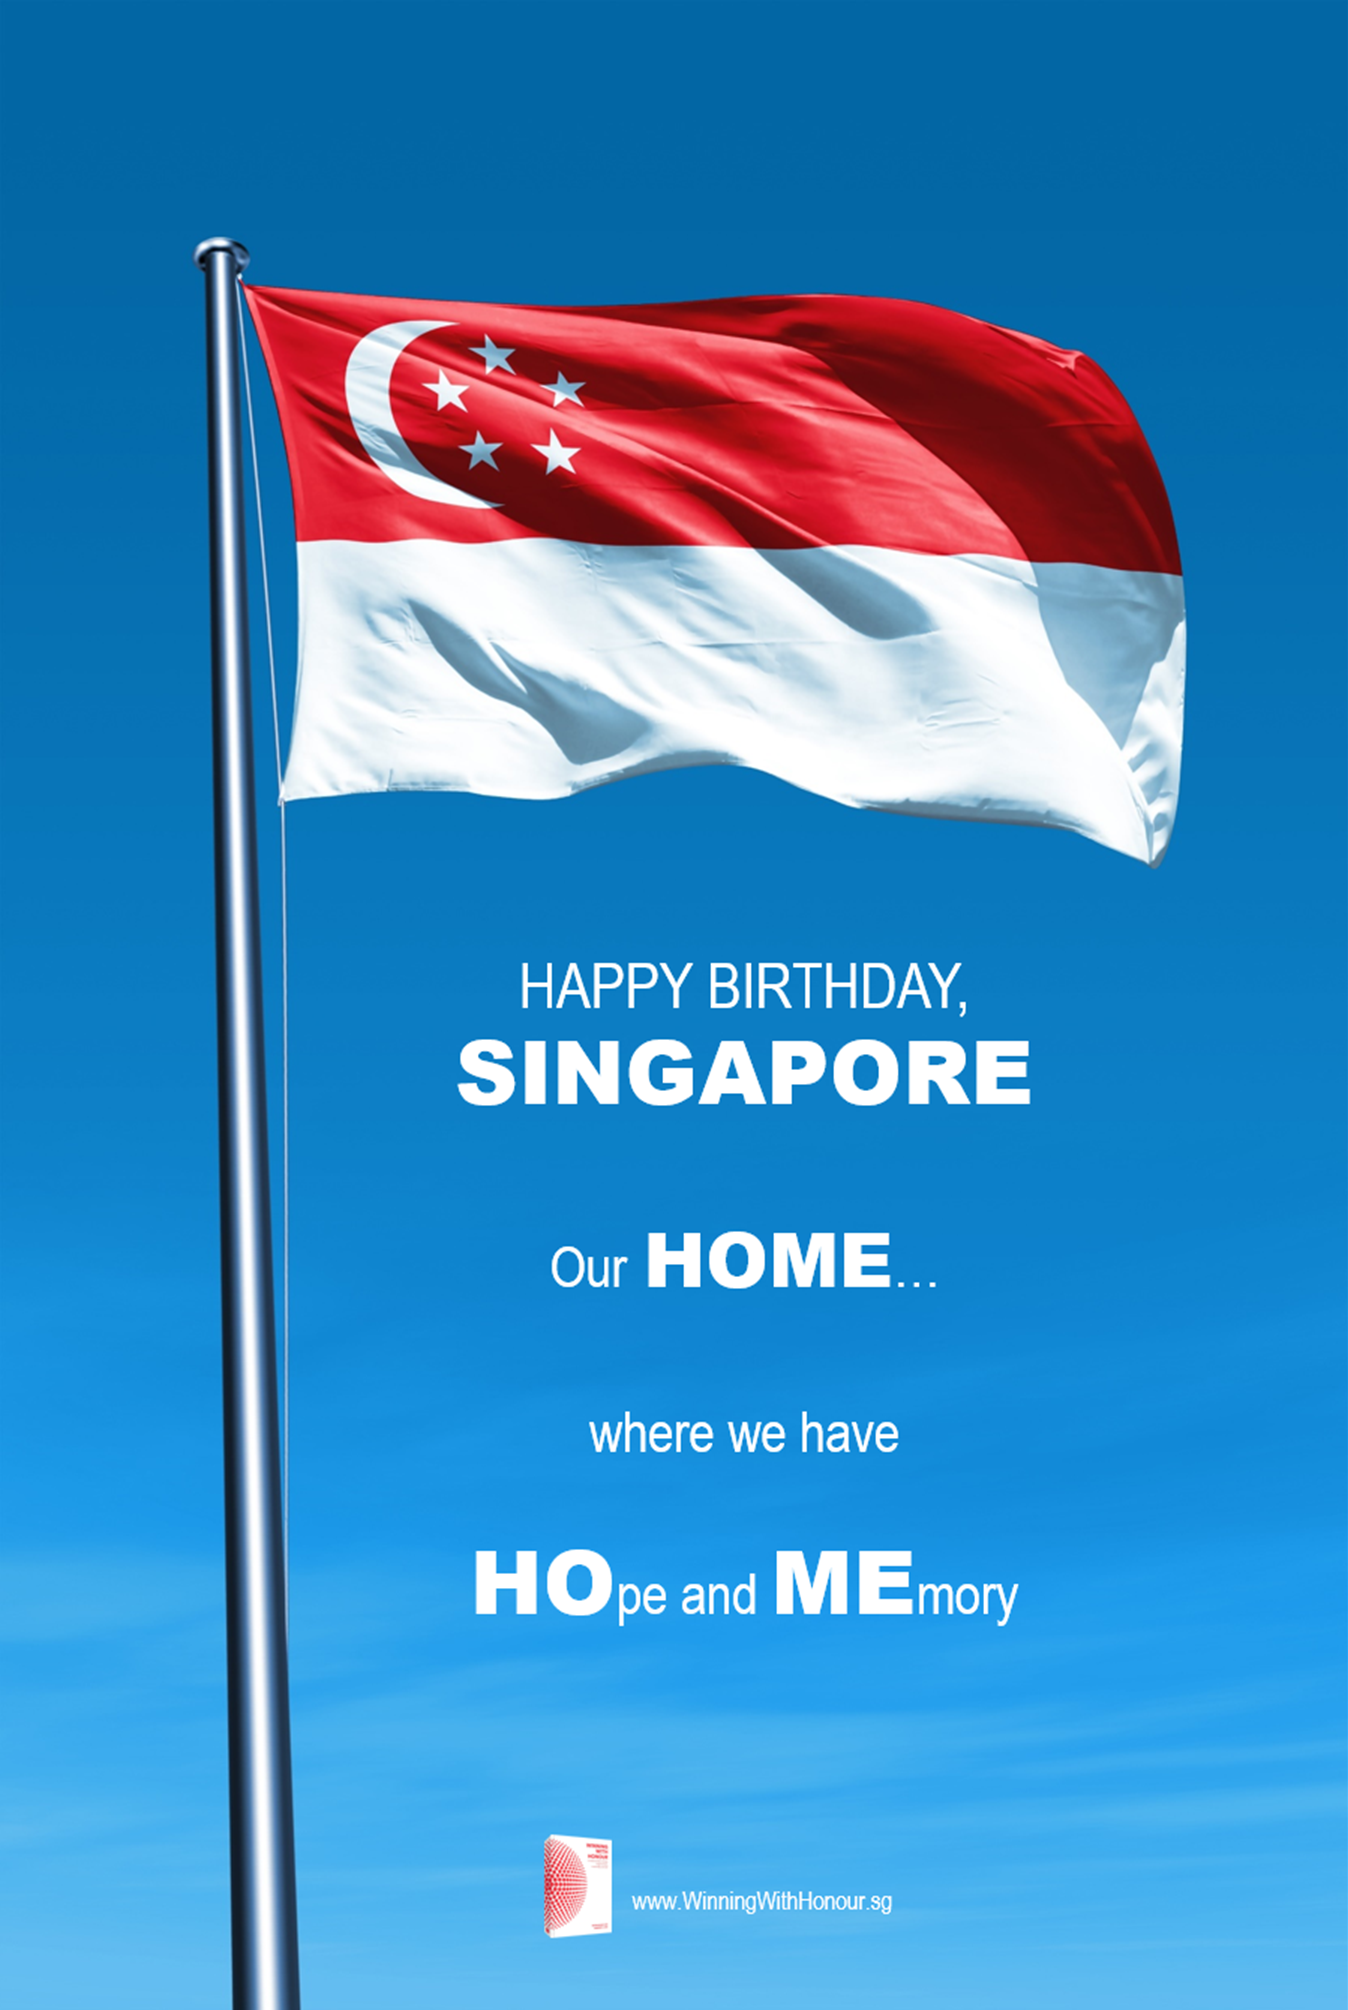 Winning with Honour  l  Happy Birthday, Singapore.png